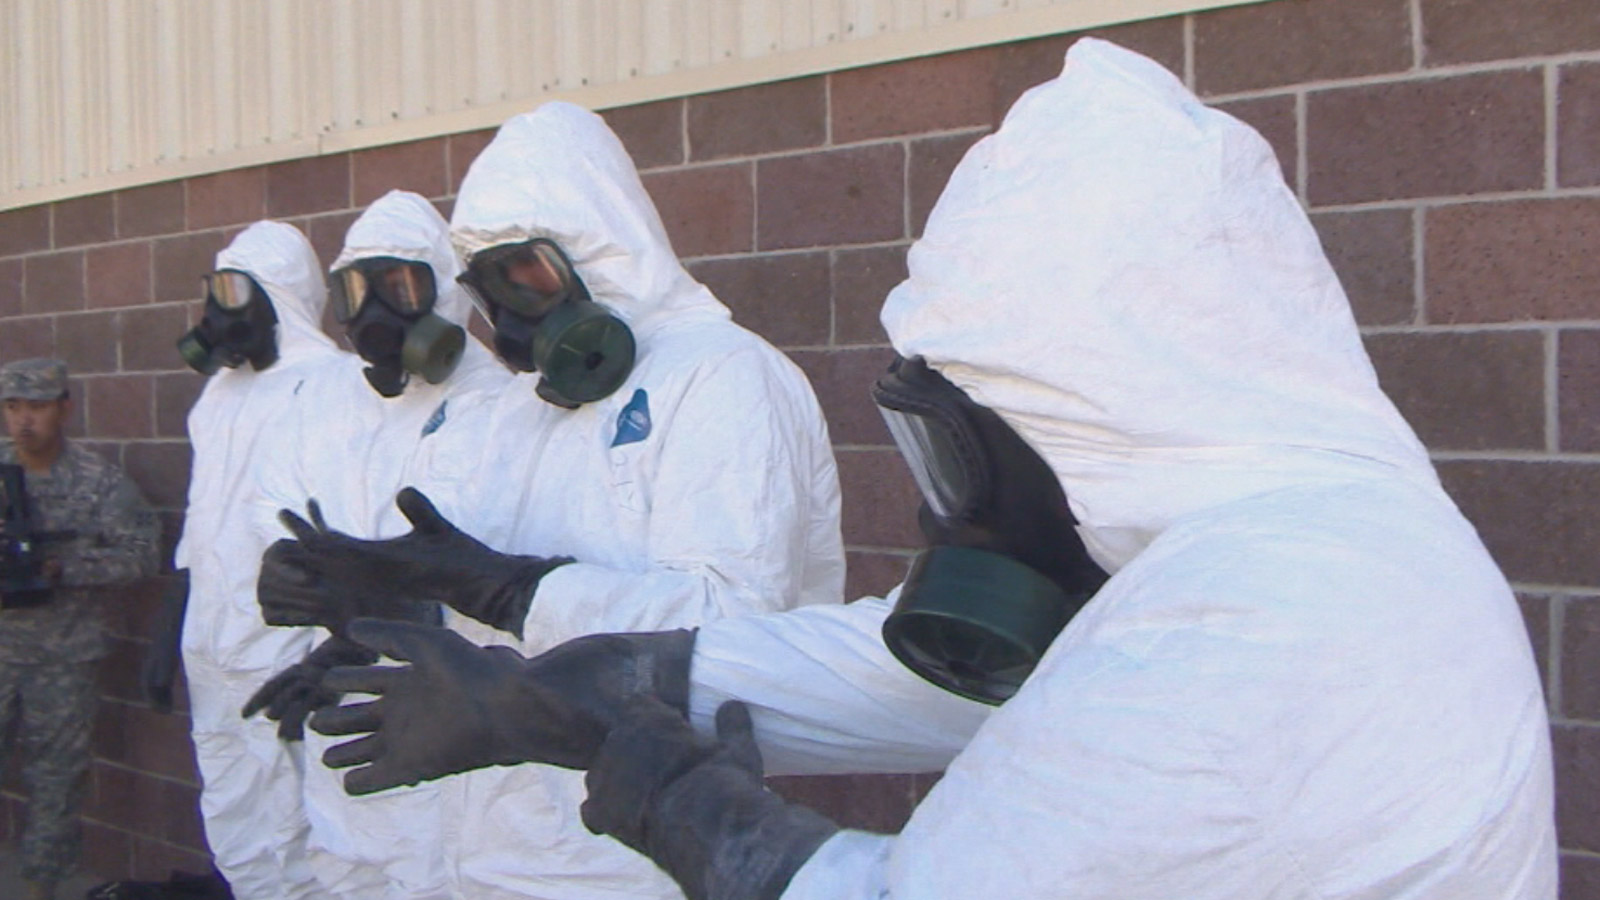 Fort Carson soldiers suit up for Ebola (credit: CBS)